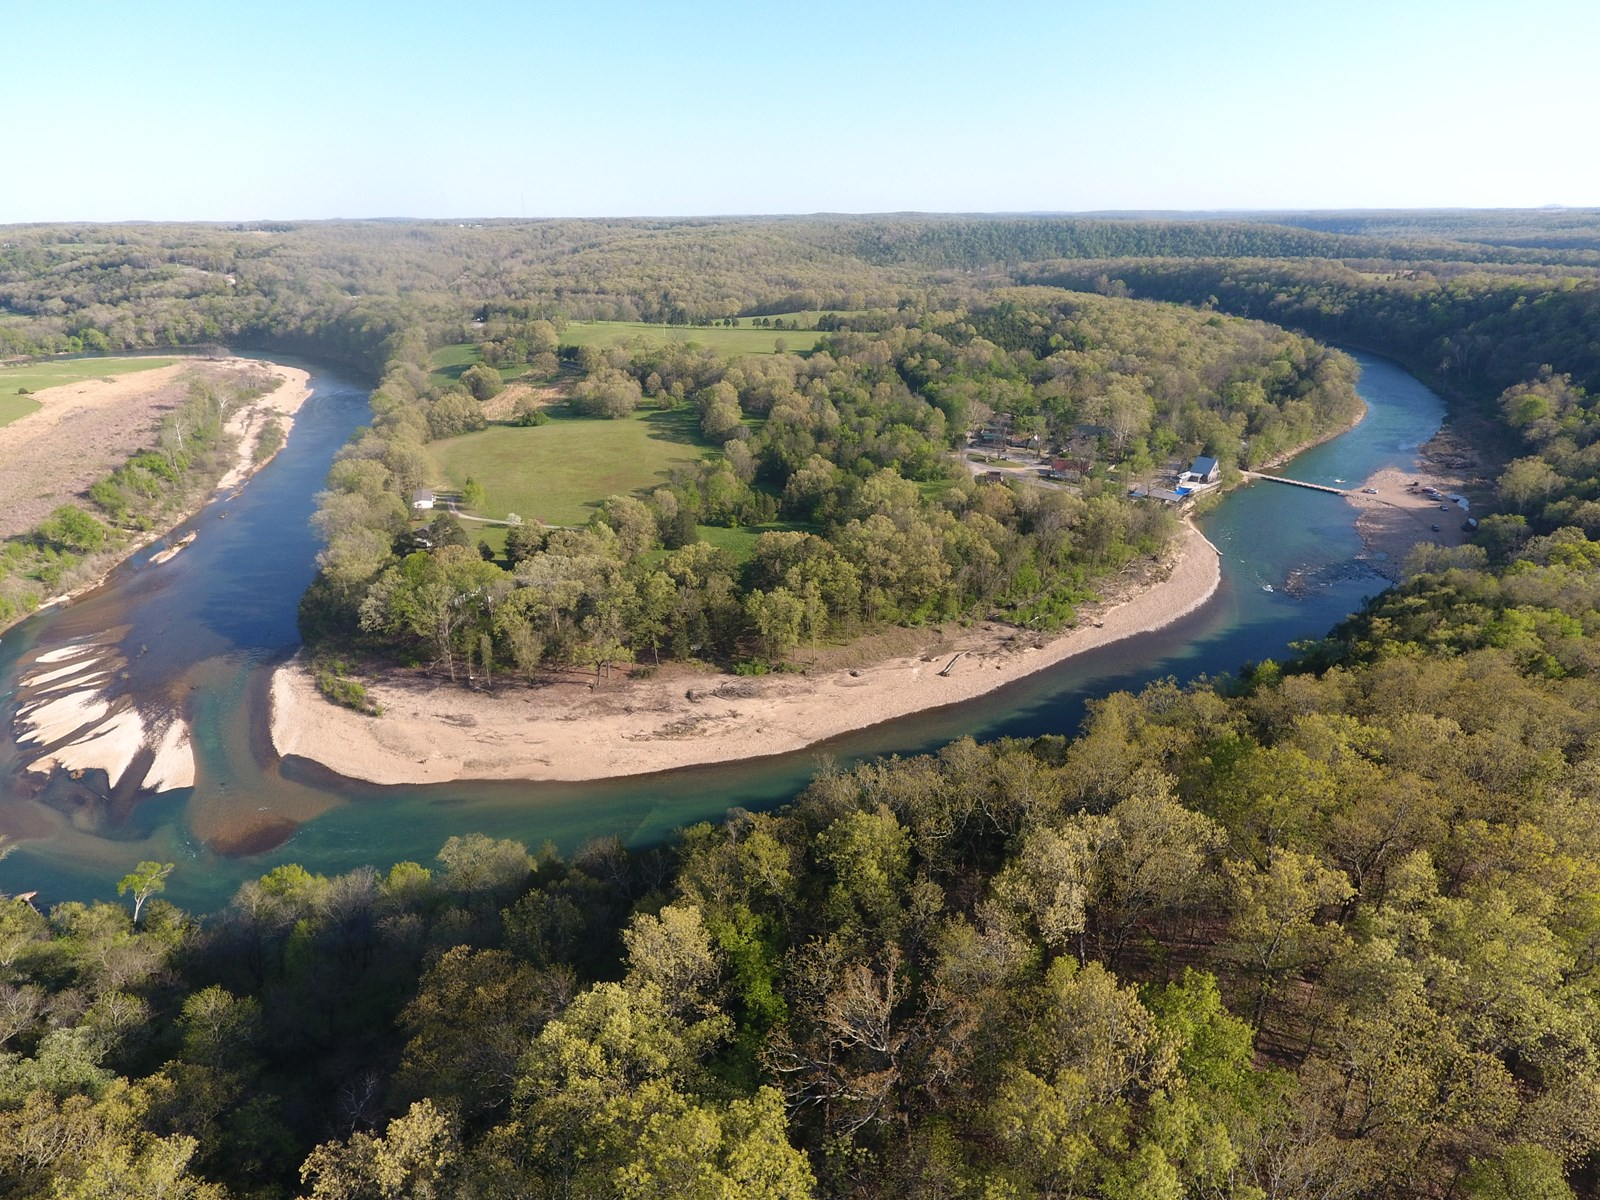 River Front Property For Sale in The Missouri Ozarks!